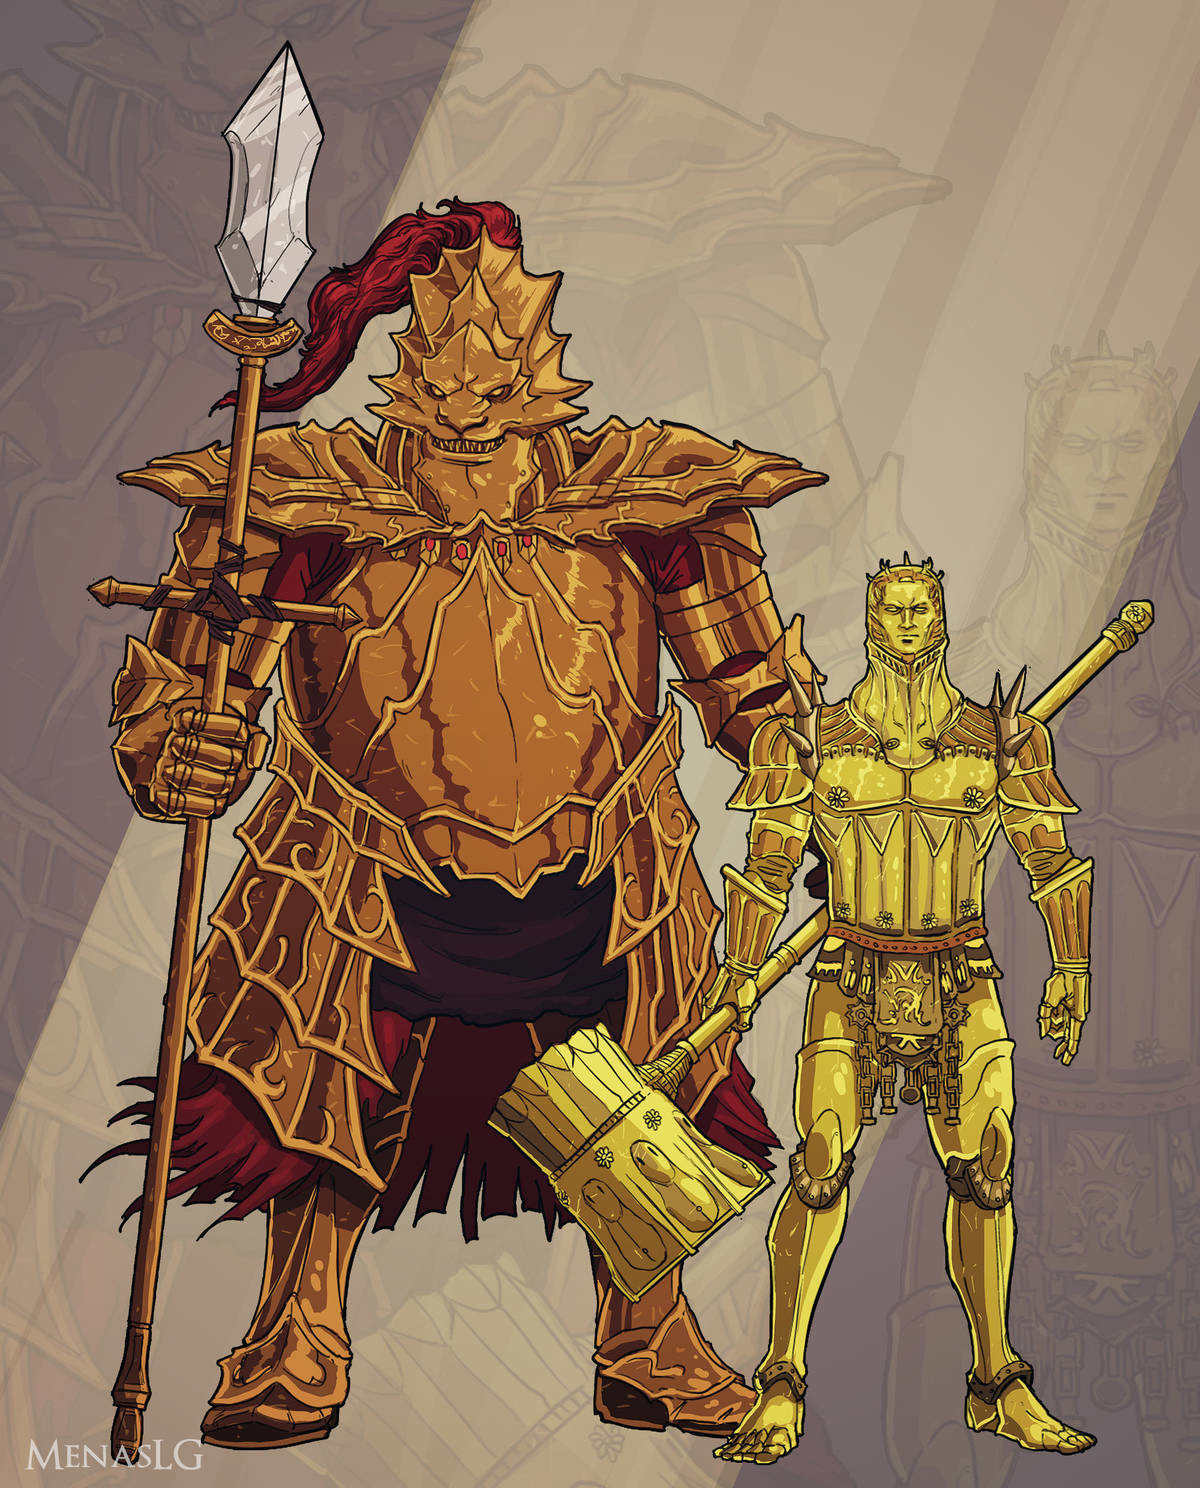 Reverse Ornstein and Smough. .. that smough is slightly intimidating